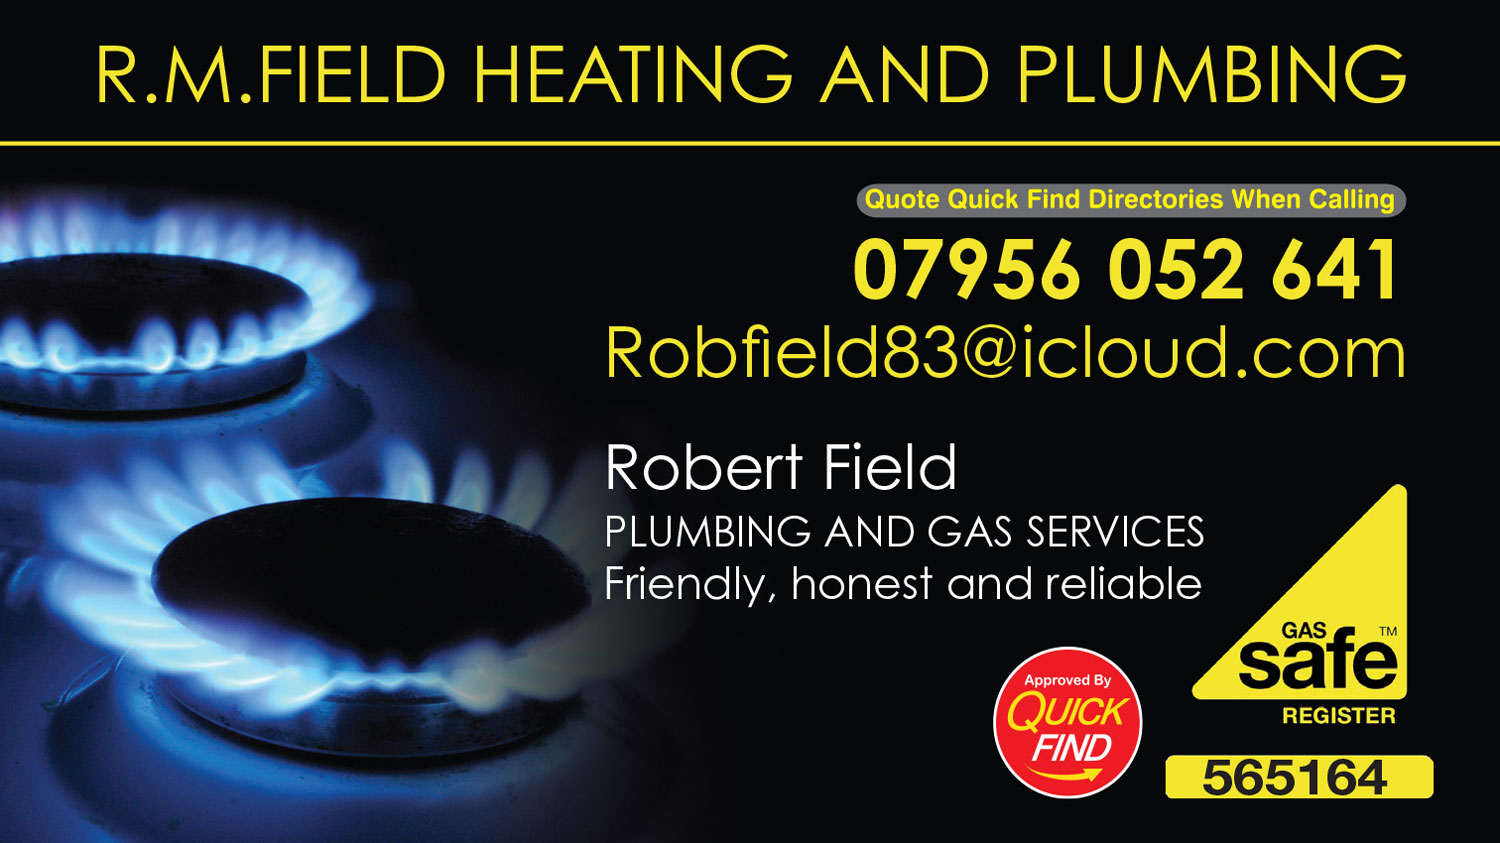 R.M. Field Heating and Plumbing